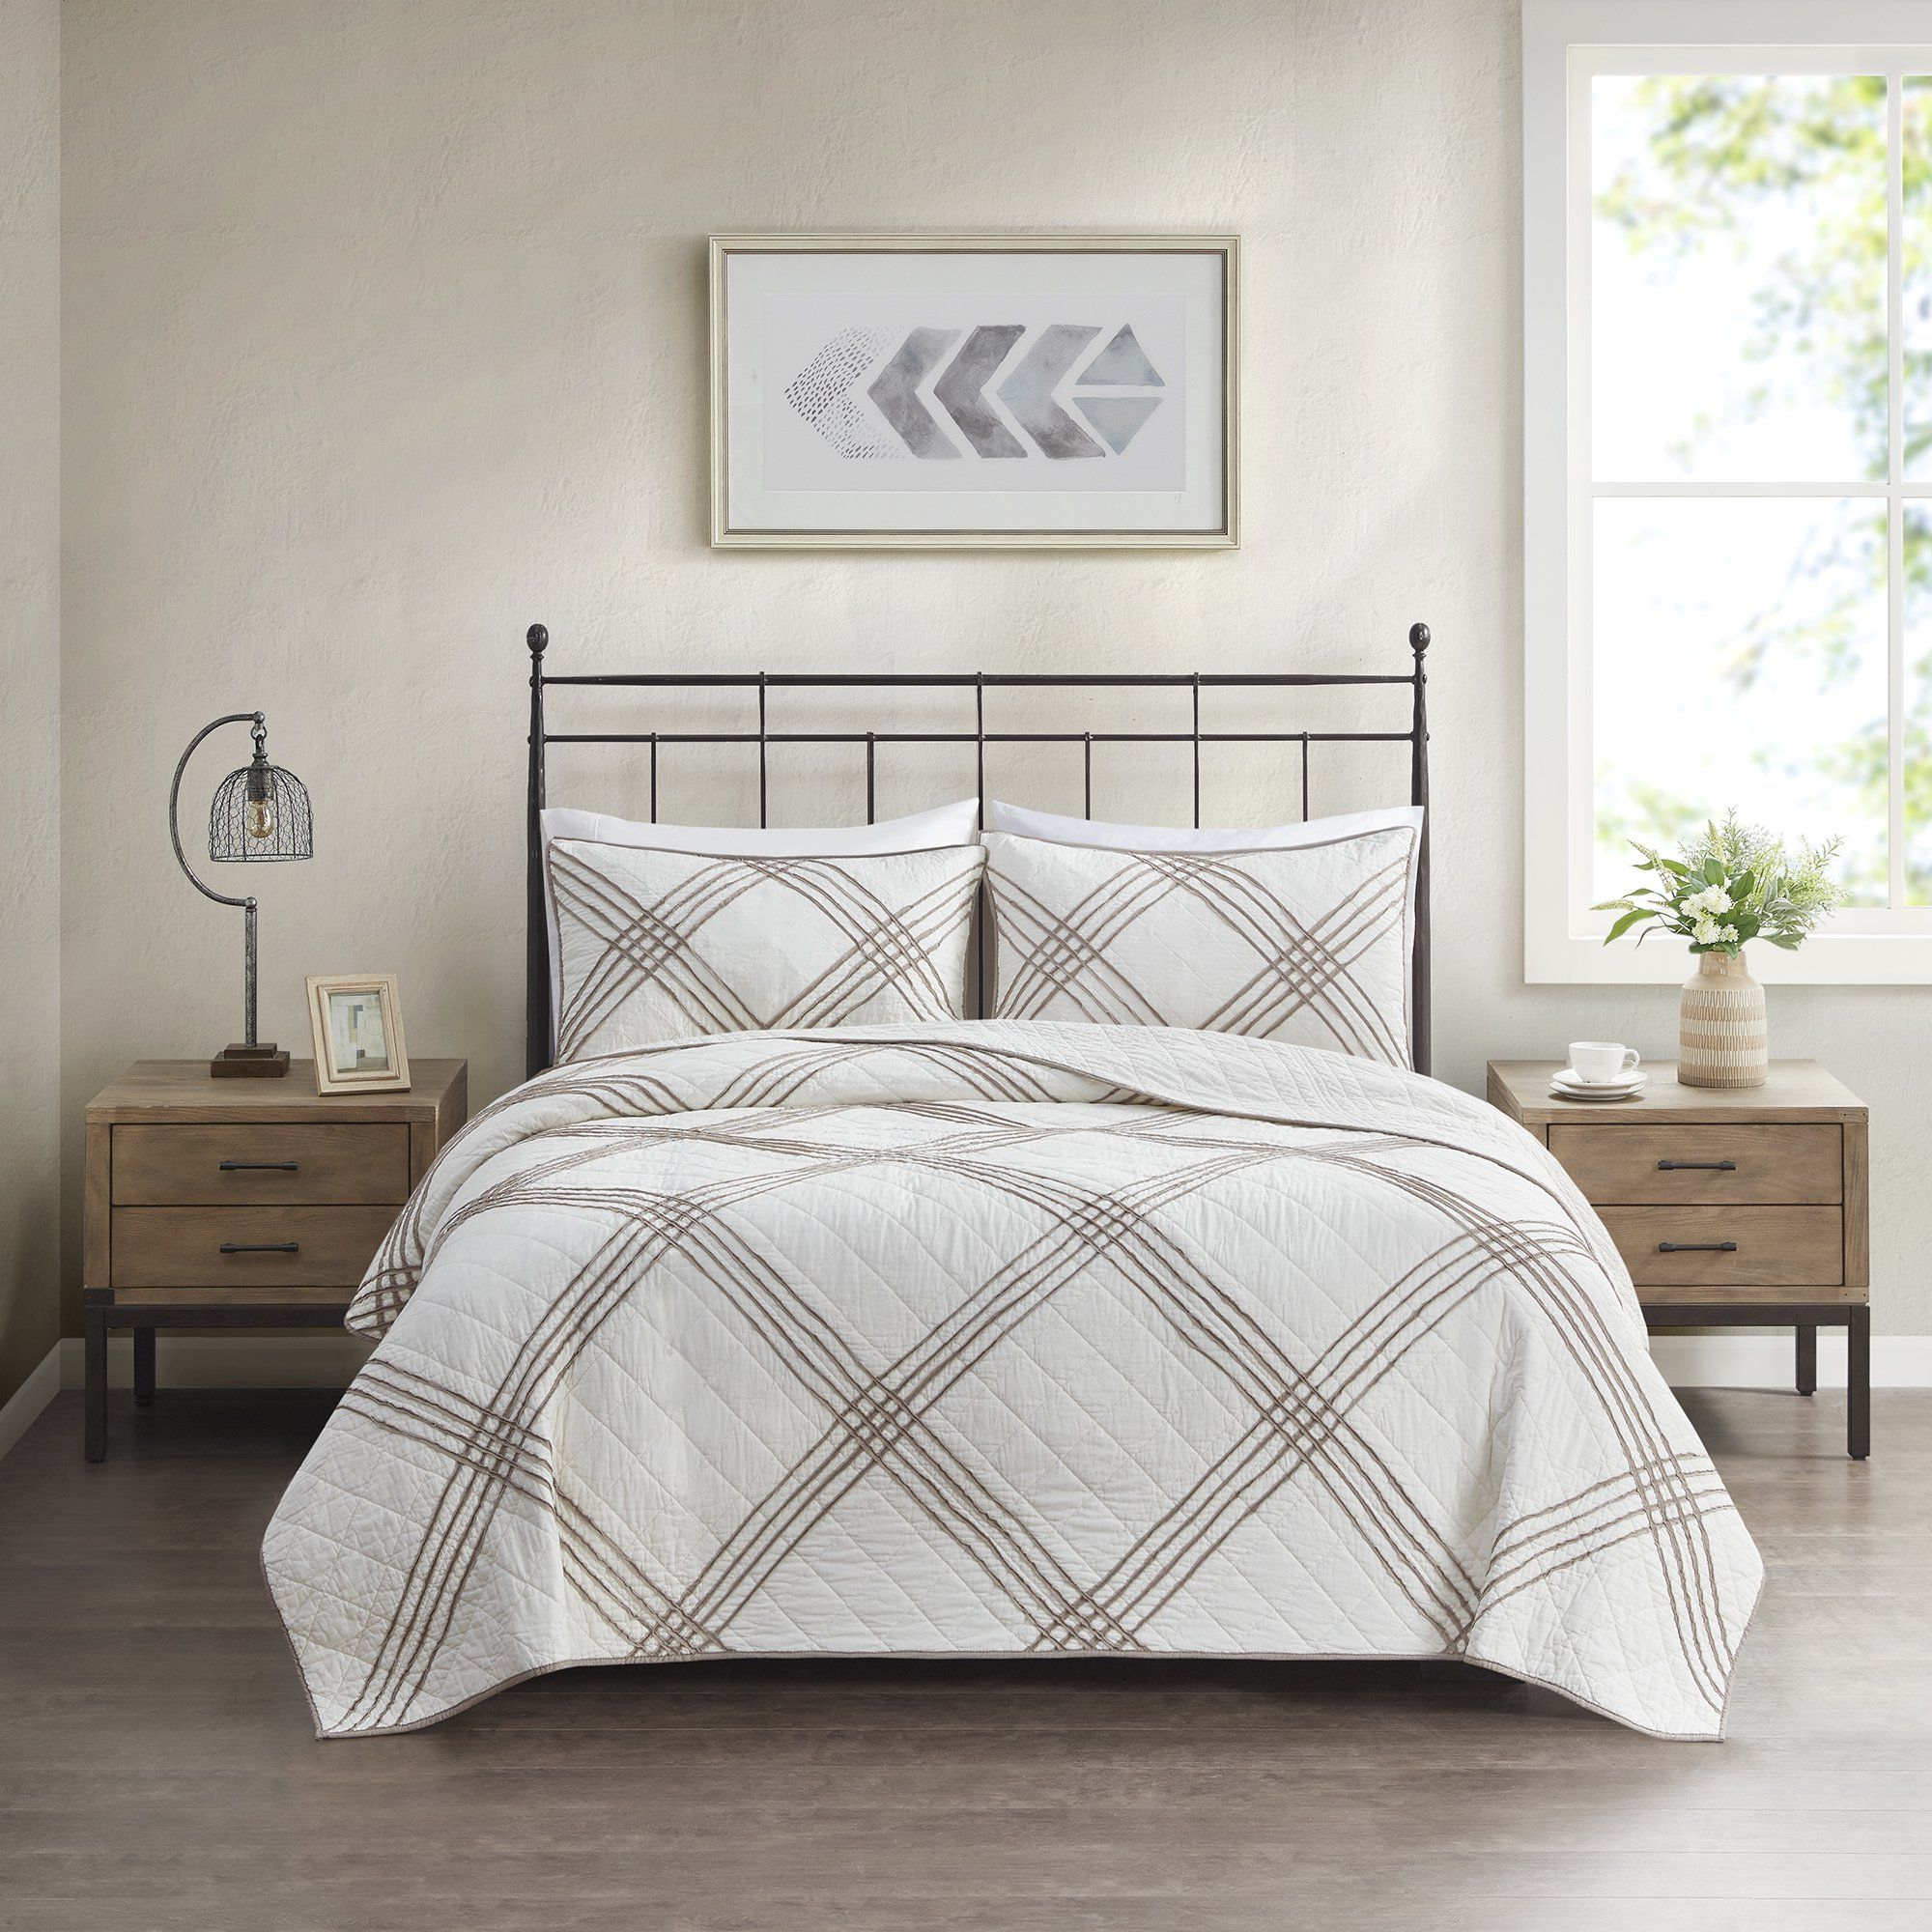 5d35693b3e5e7711657ddae27e53ae1a - Better Homes And Gardens Pleated Diamond Quilt Collection